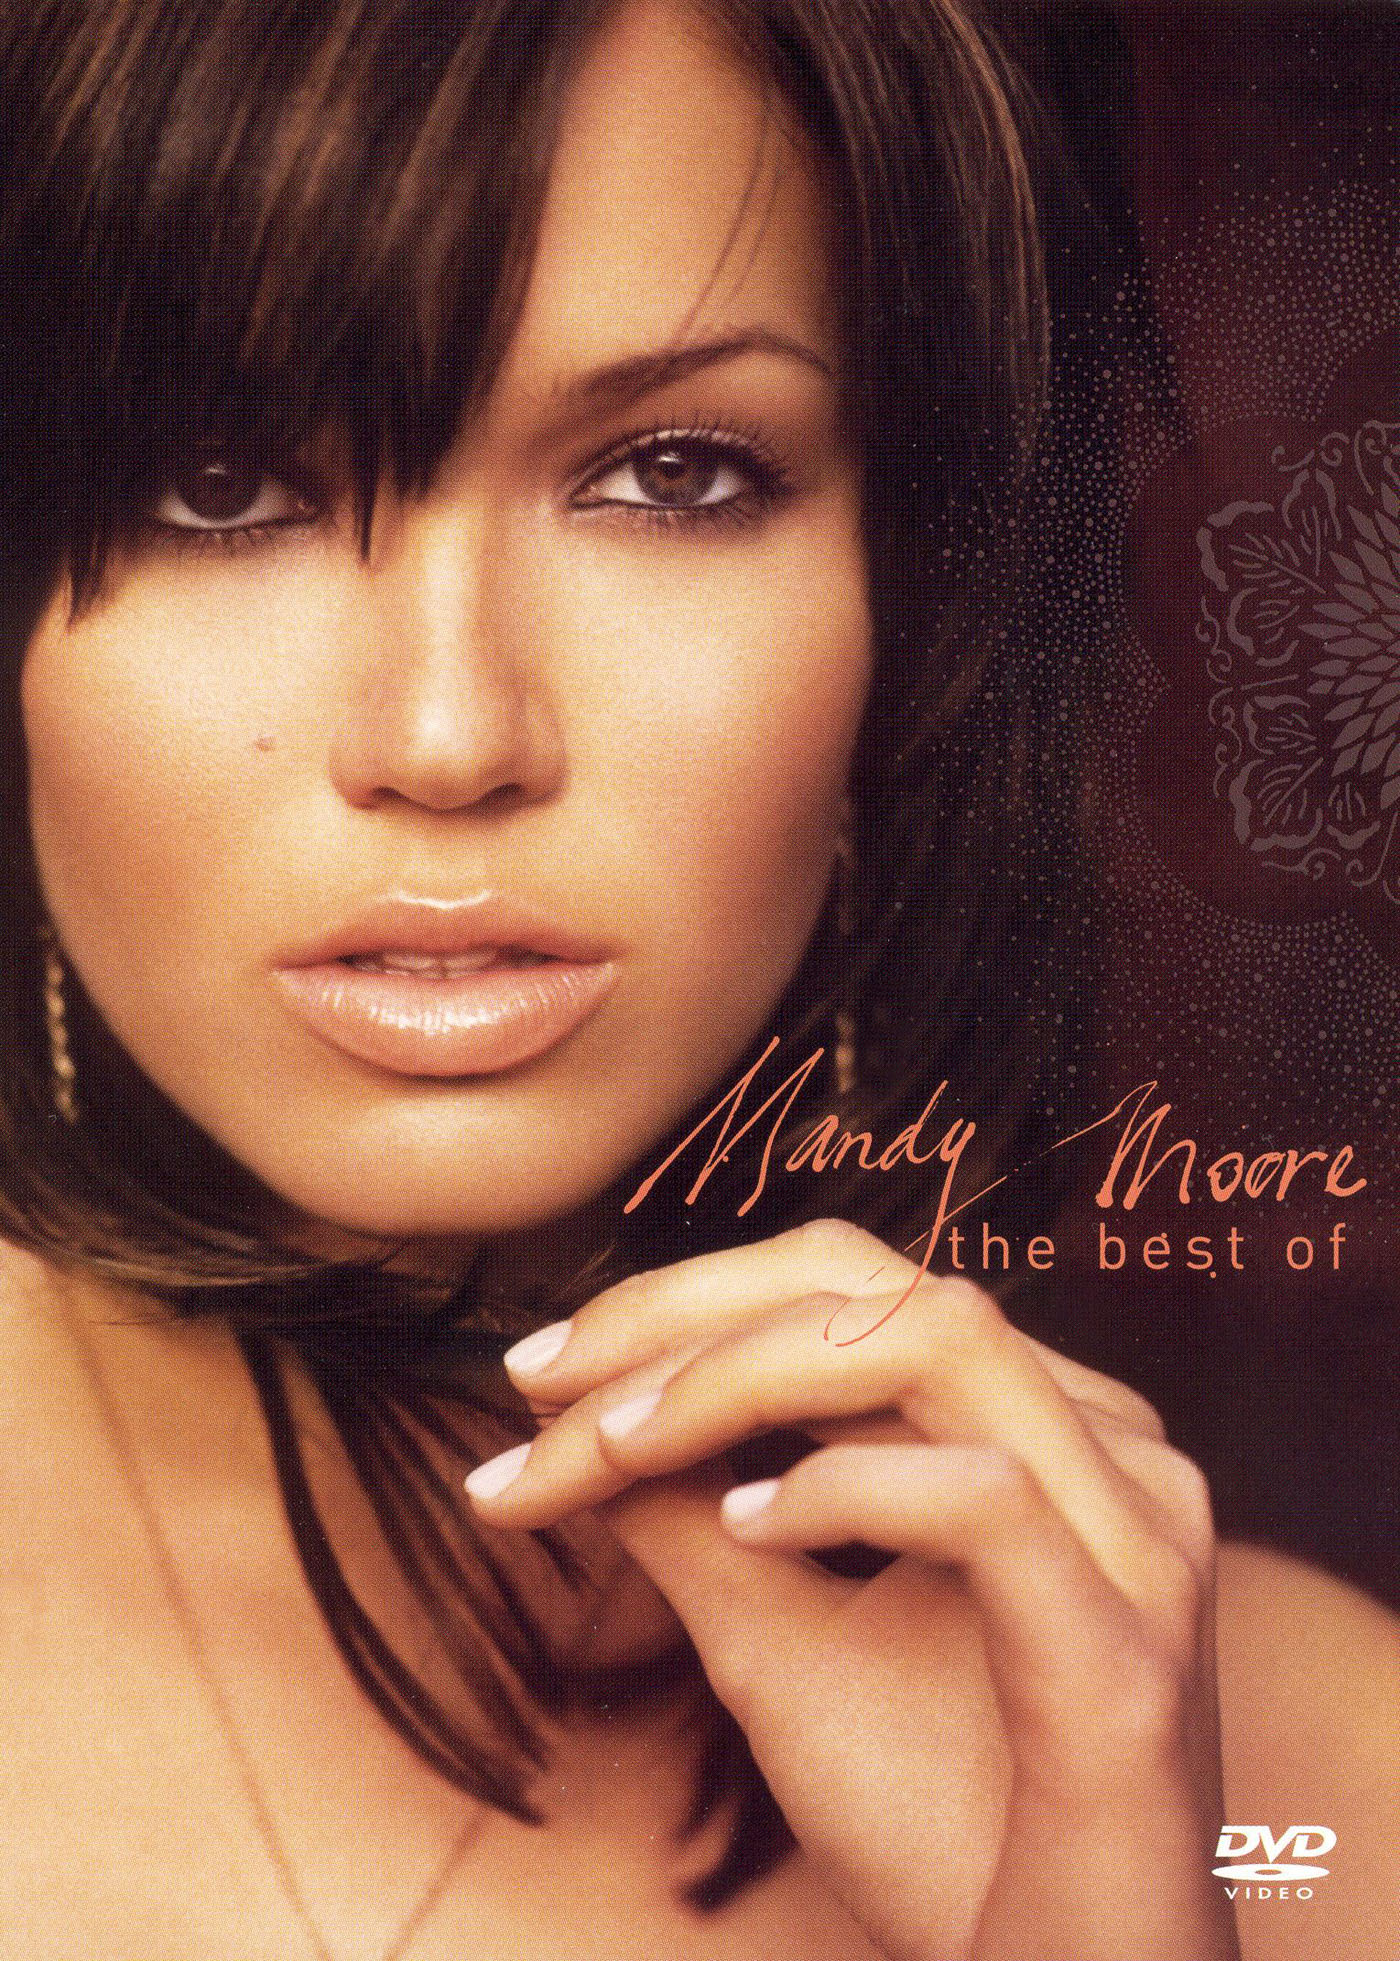 Mandy Moore: The Best Of